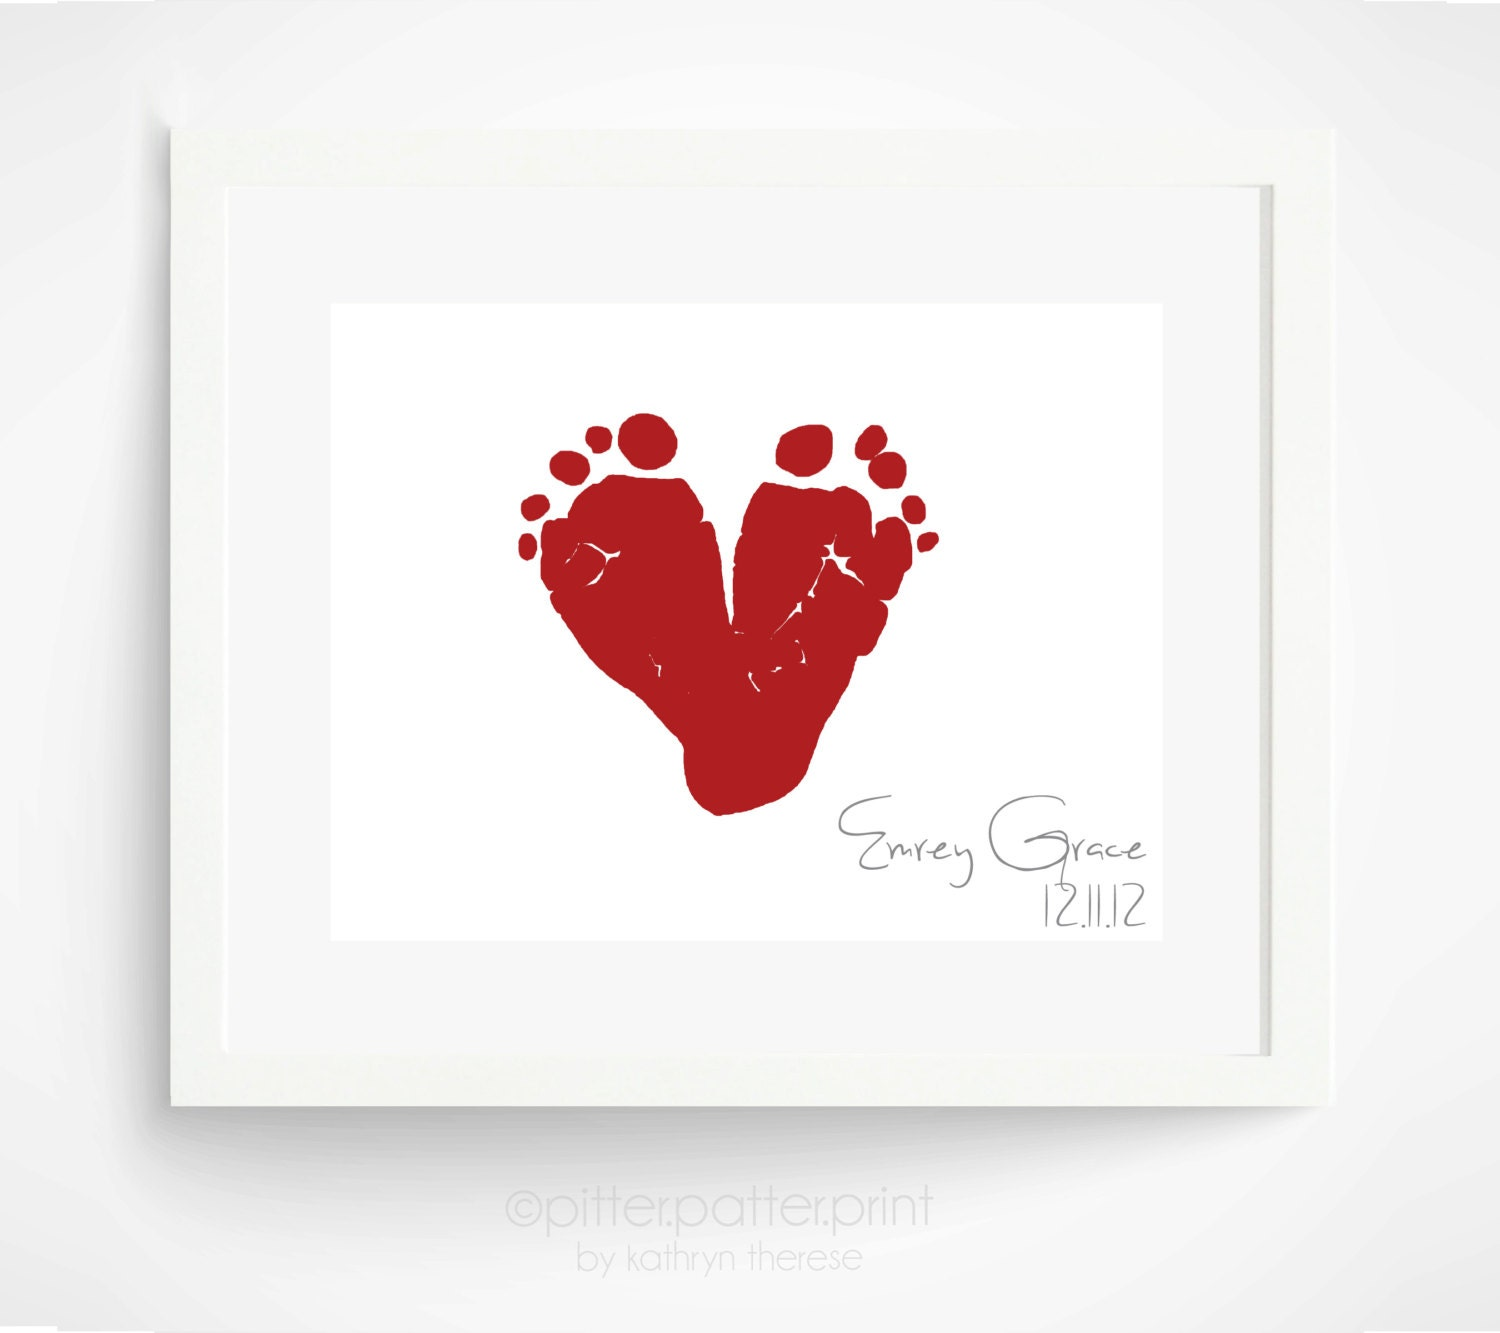 Baby's First Christmas - Gift for New Dad, Gift for New Grandmother - Red Heart Baby Footprint Wall Art - Personalized Holiday Decor - PitterPatterPrint